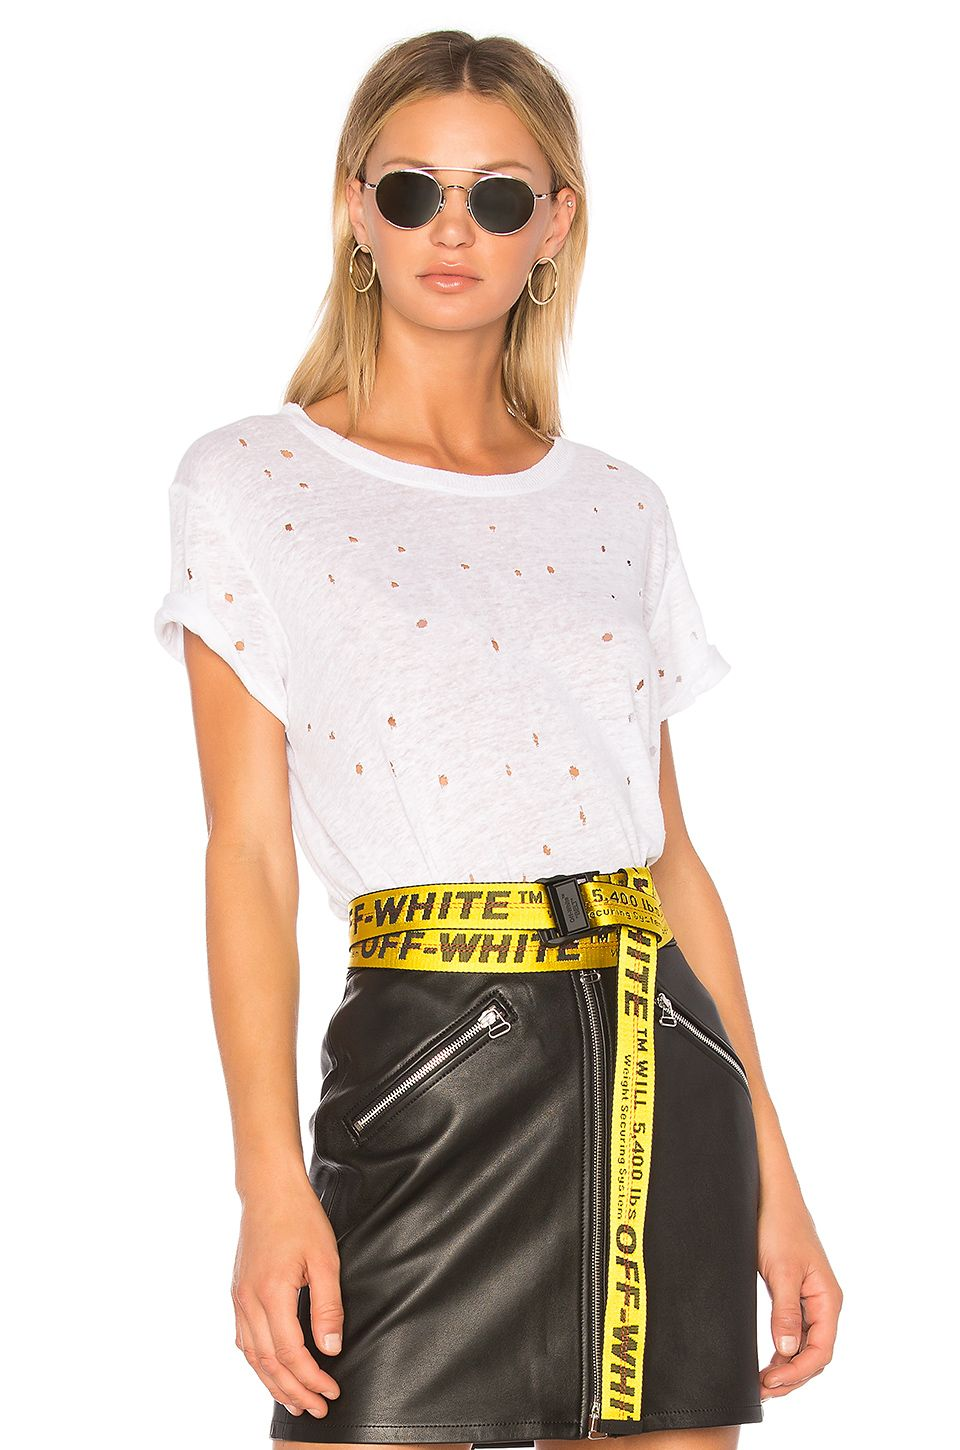 Off White Industrial Belt Off White Off White Belt Off White Industrial Belt Fashion